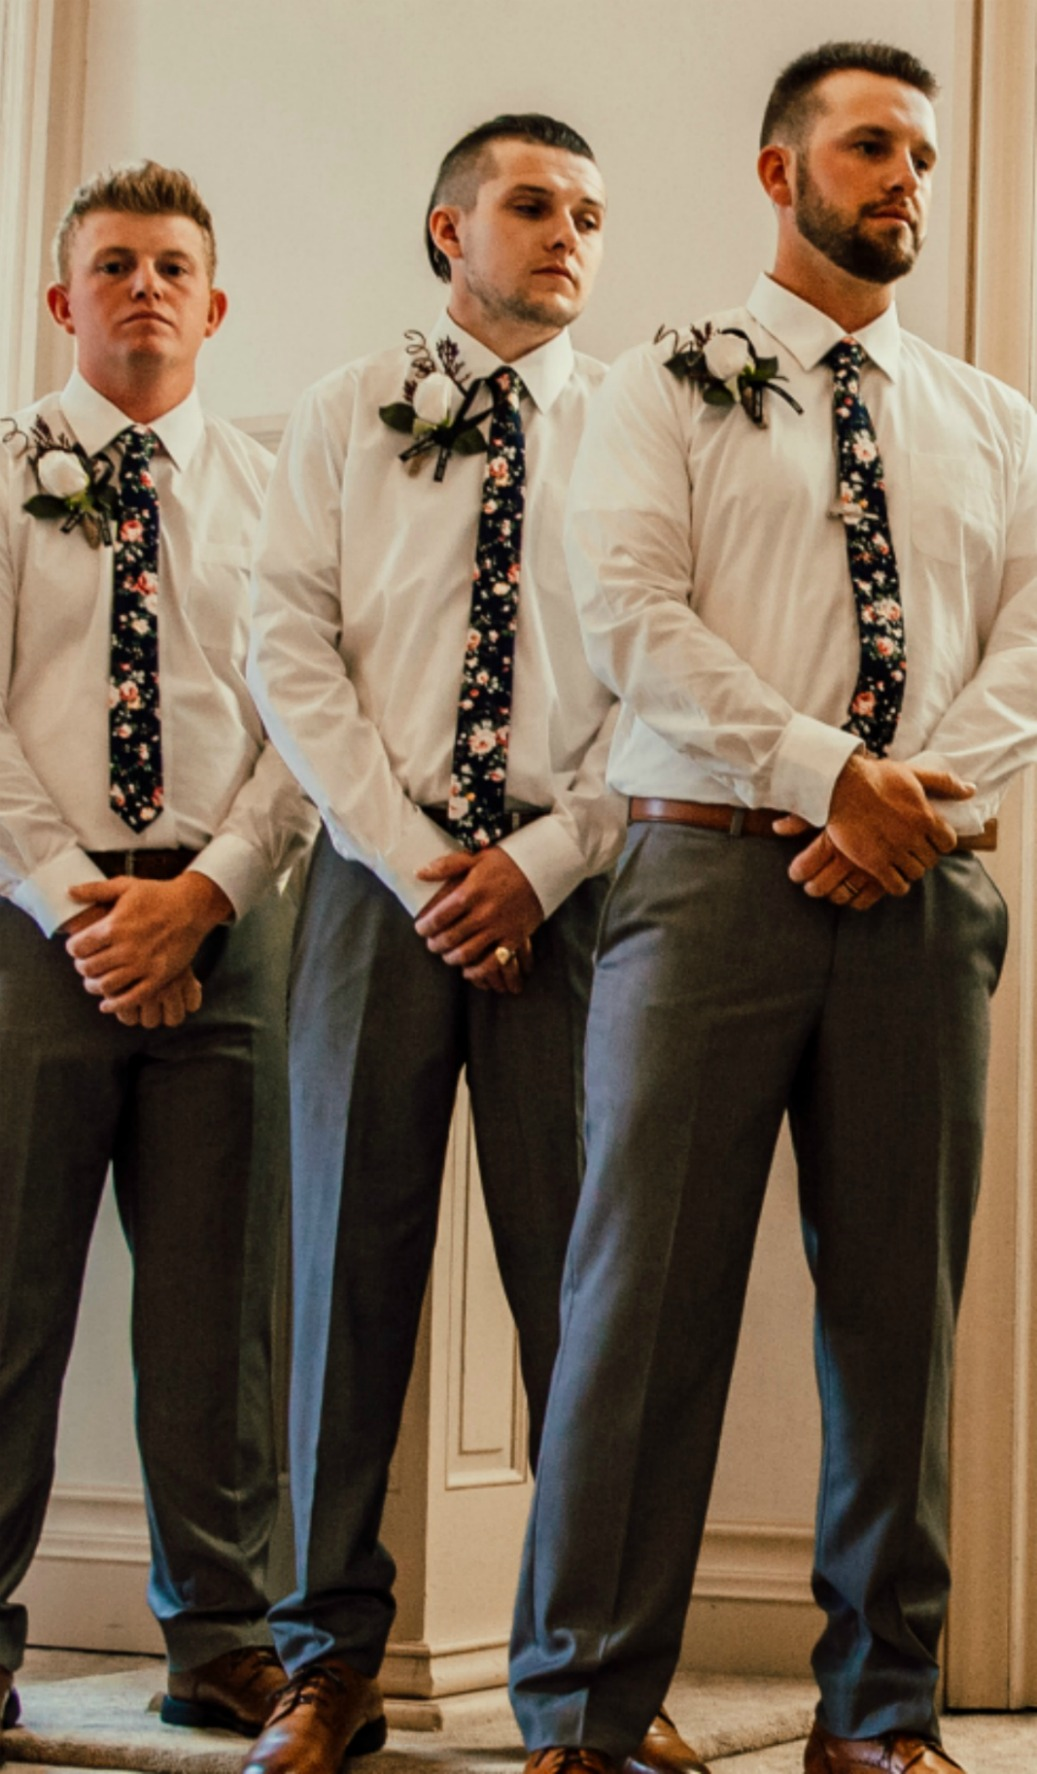 Ties for the Guys